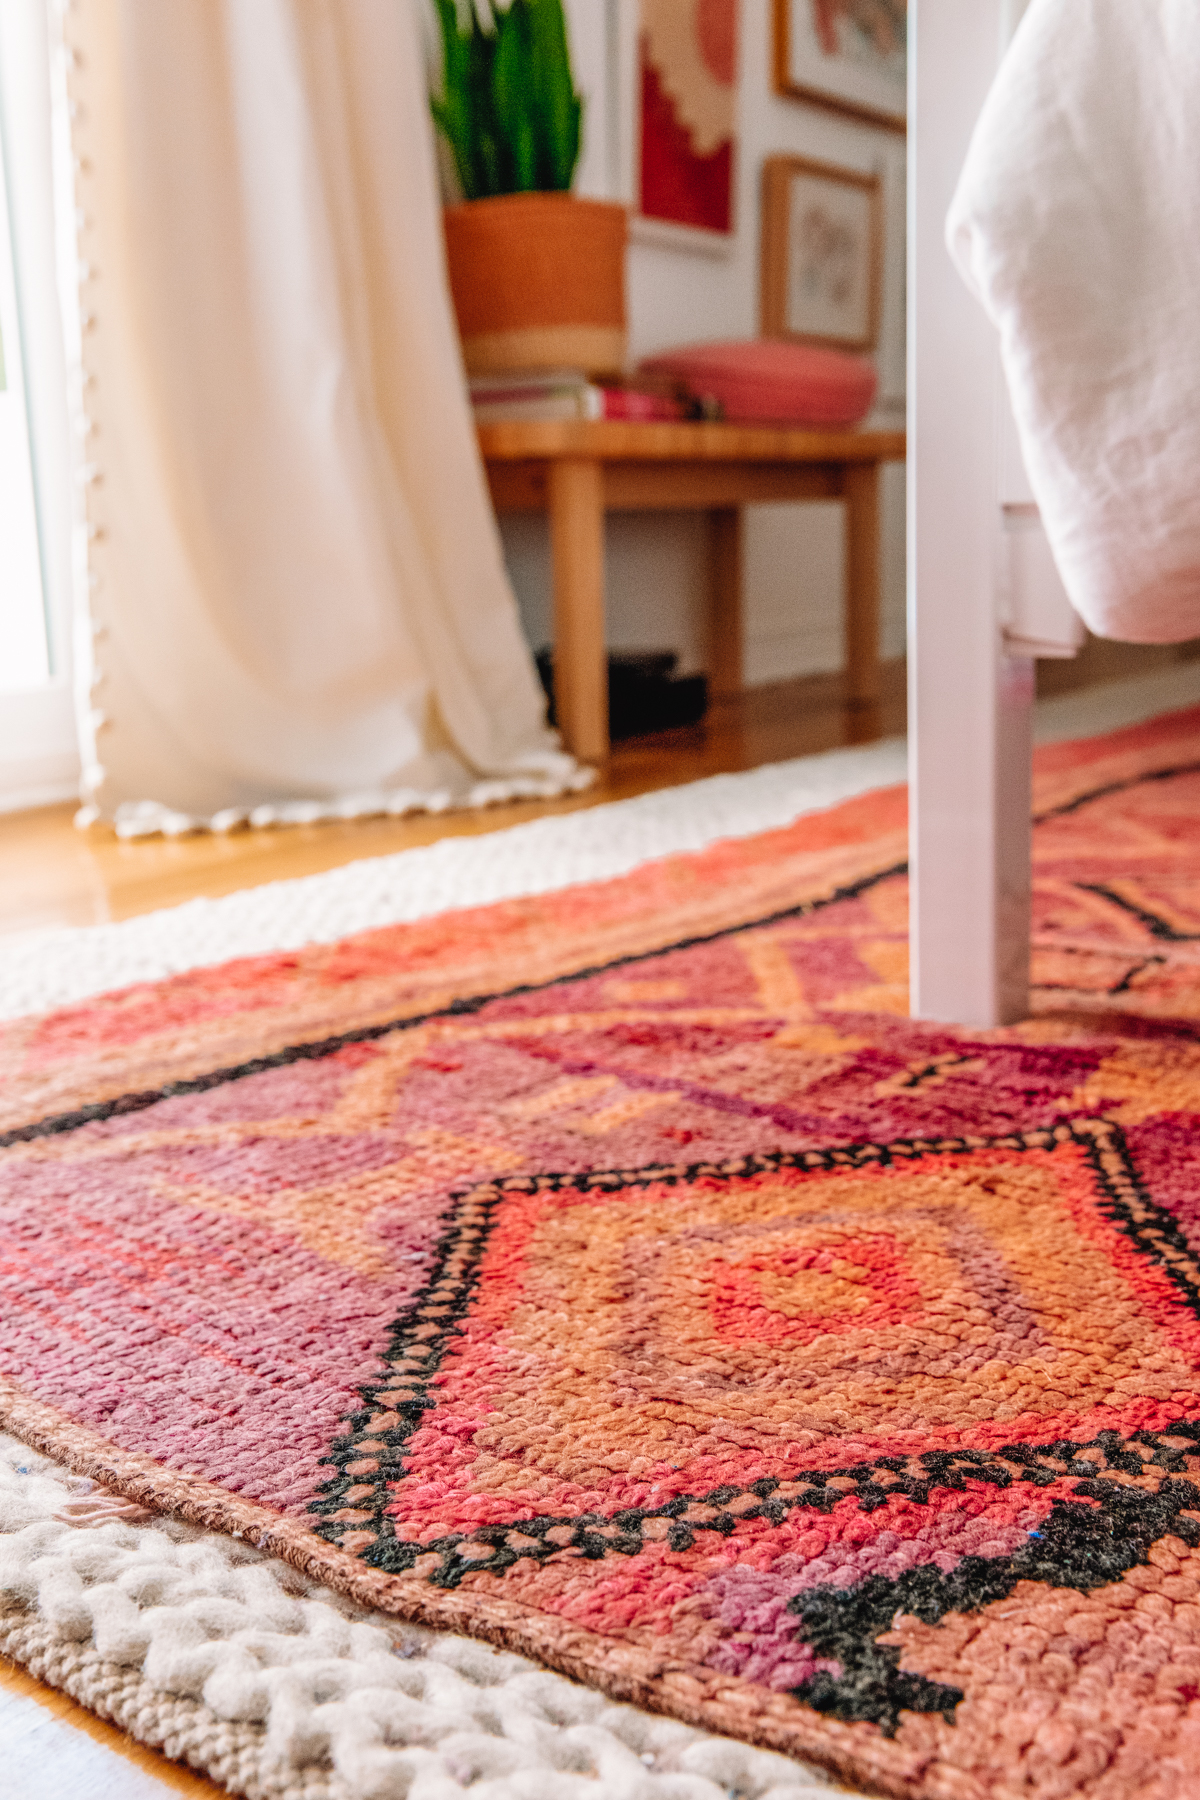 How to Clean Moroccan Rugs